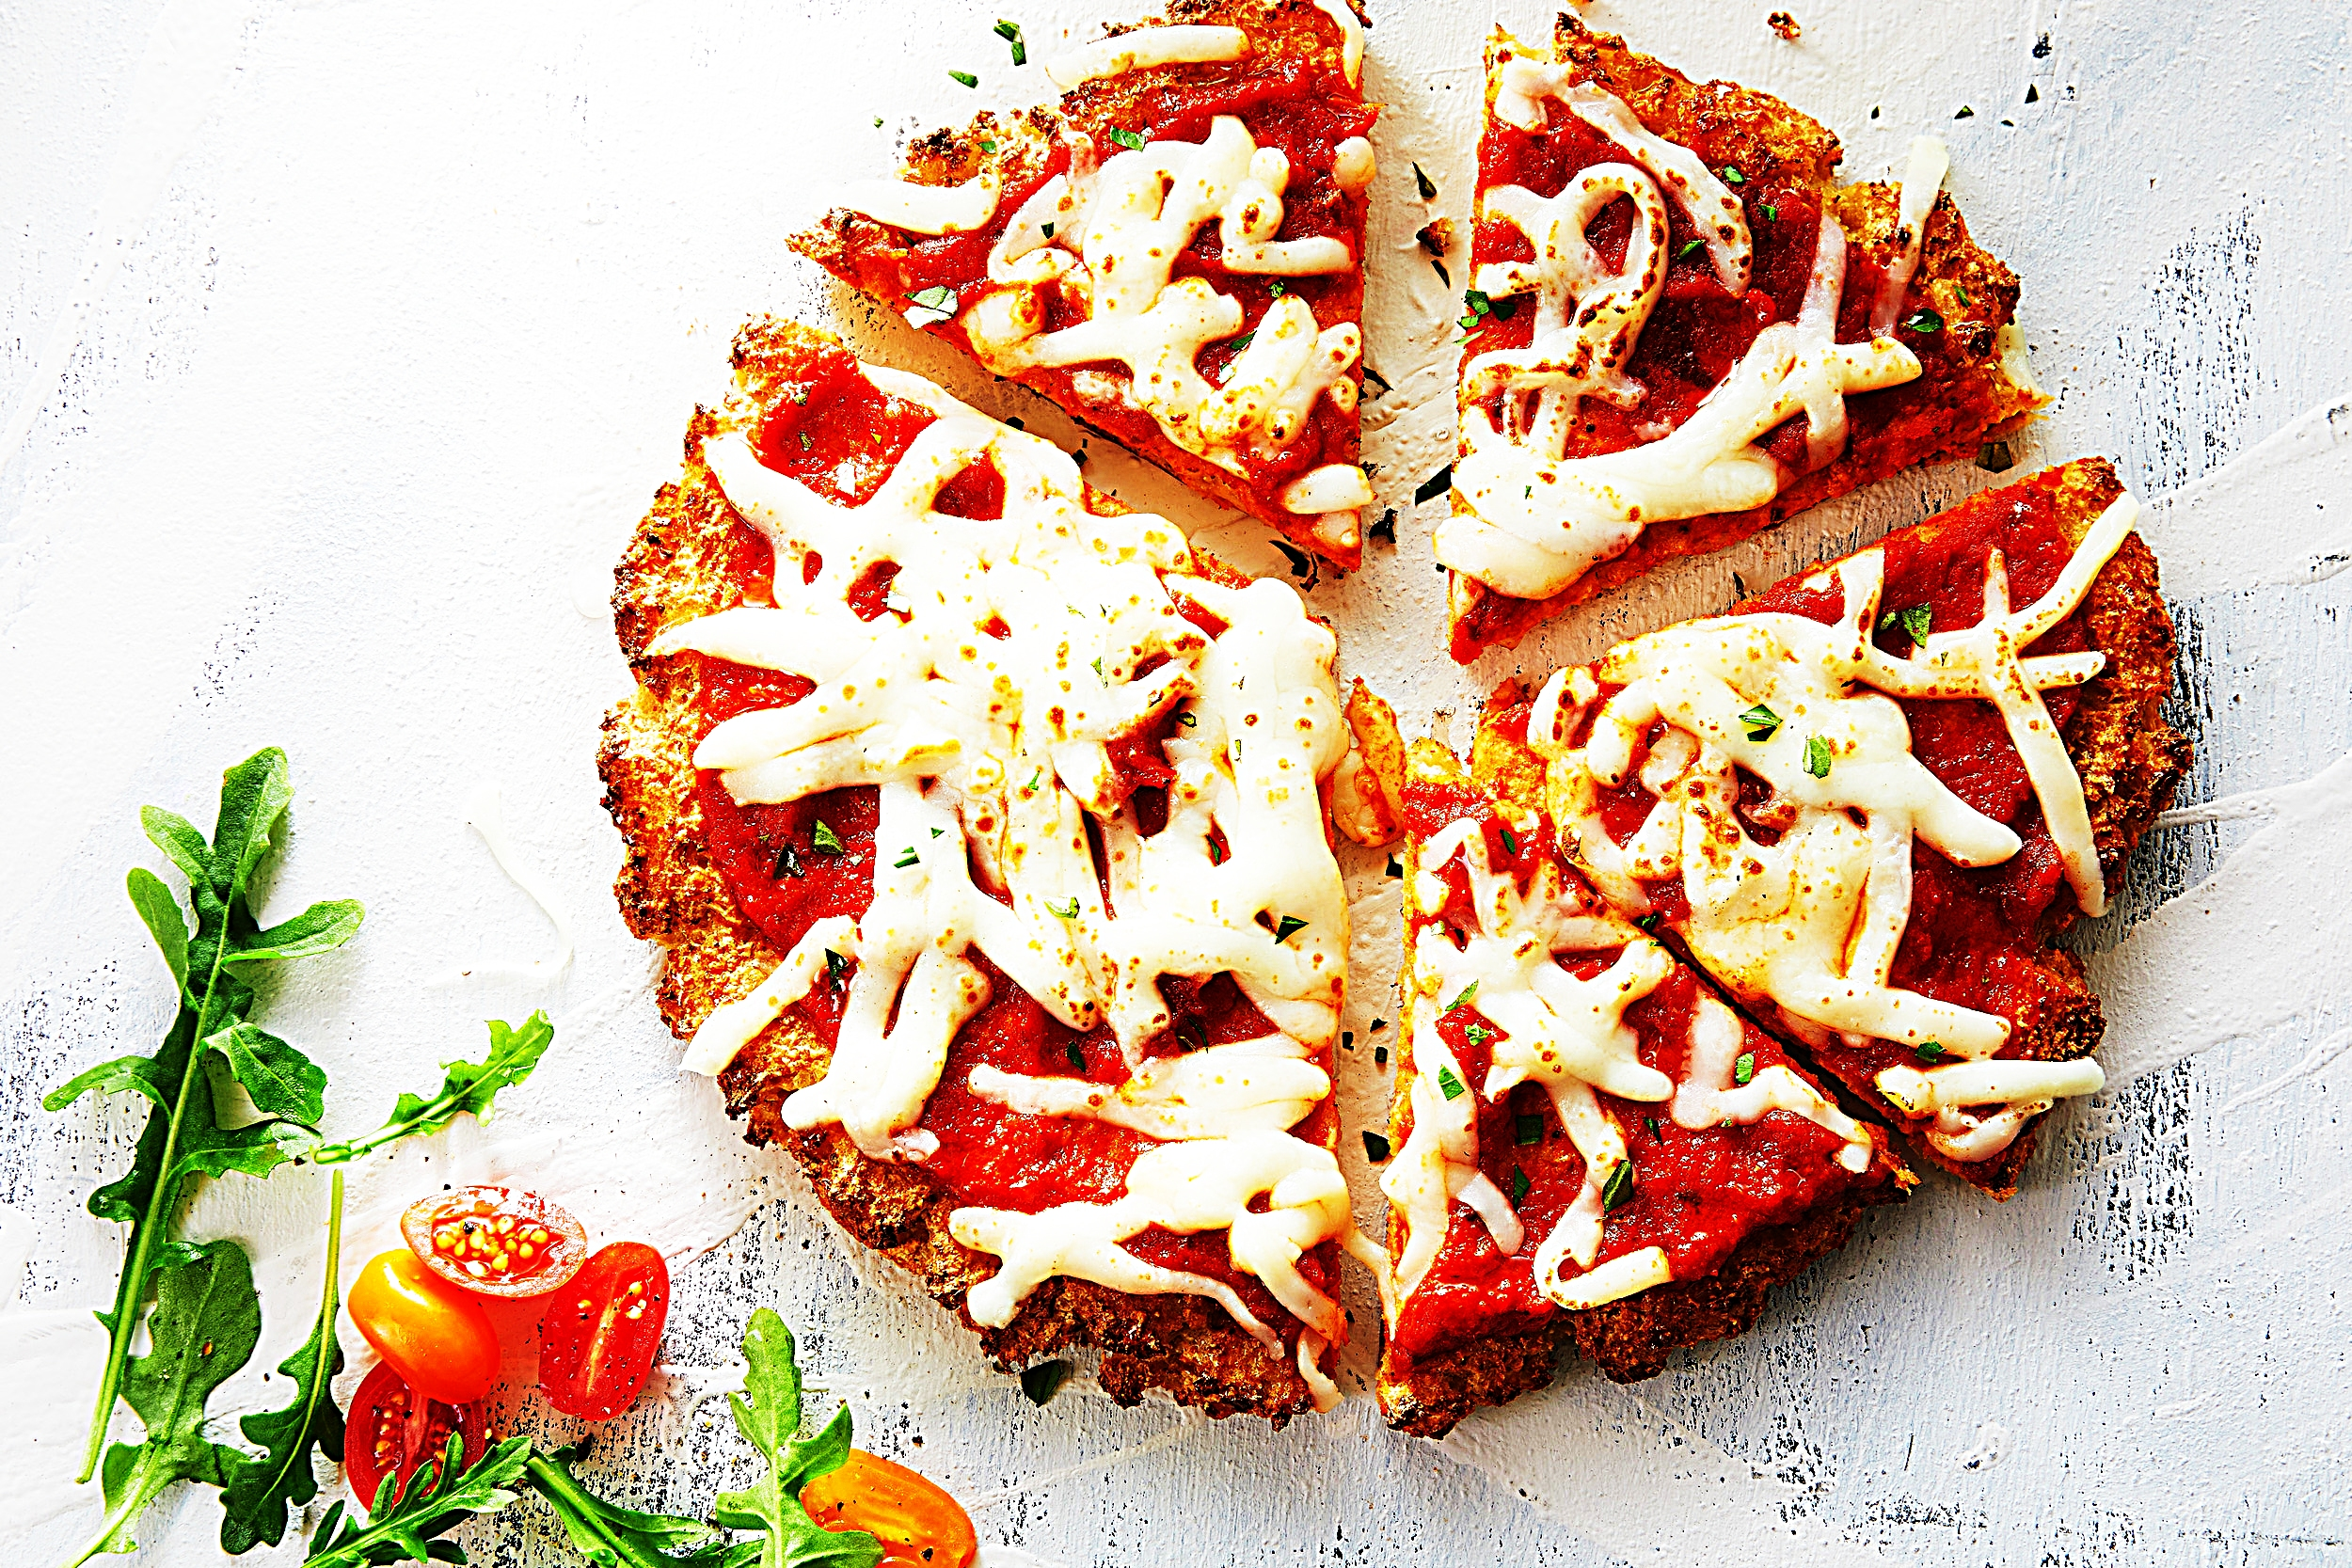 Stupid-Easy Recipe for Cheesy Gluten-Free Cauliflower Crust Pizzas (#1 Top-Rated)